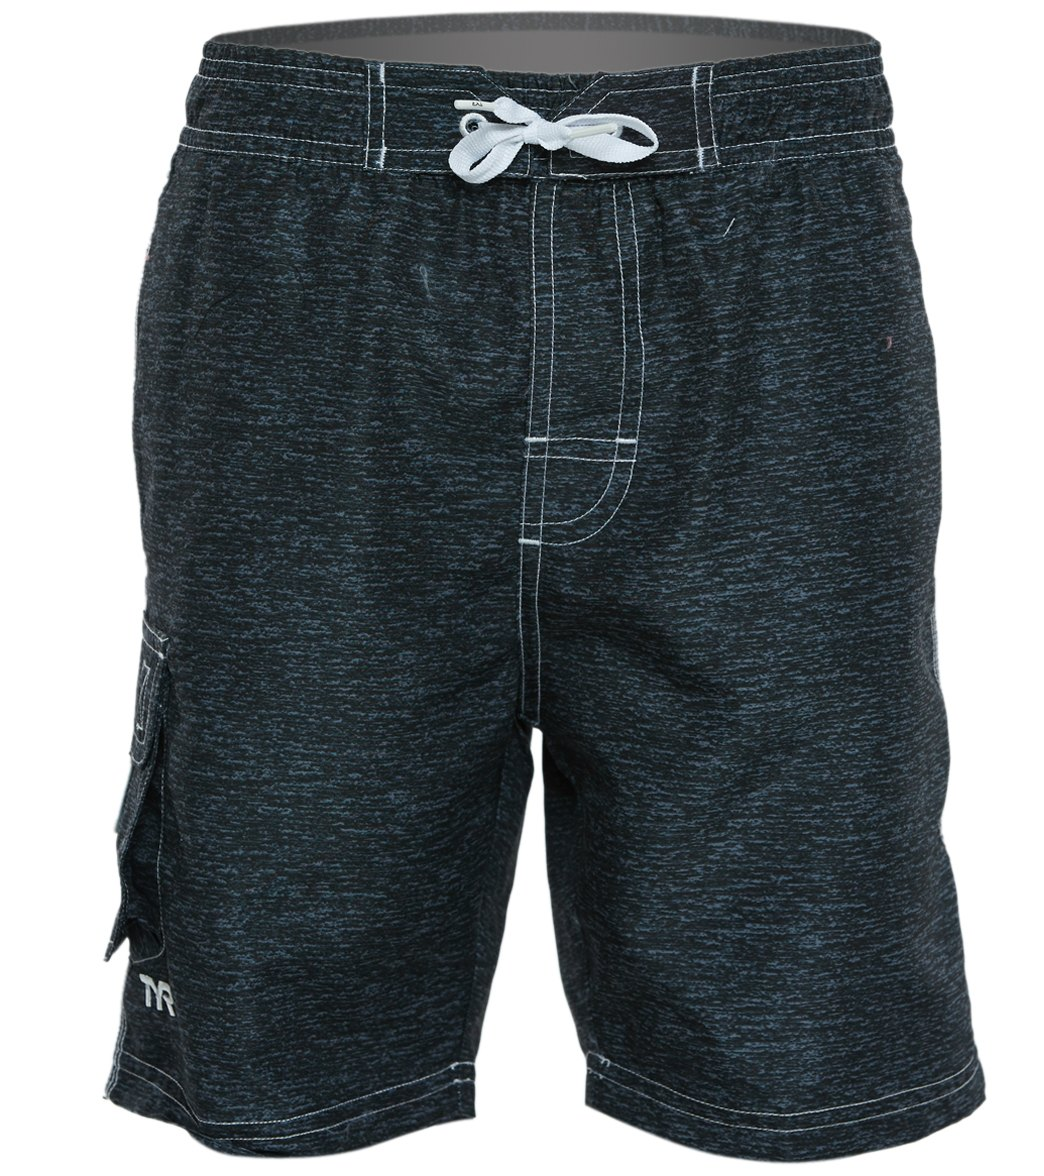 d645930be5 TYR Boys' Tahoe Challenger Swim Short (Big Kid, Little Kid) at  SwimOutlet.com